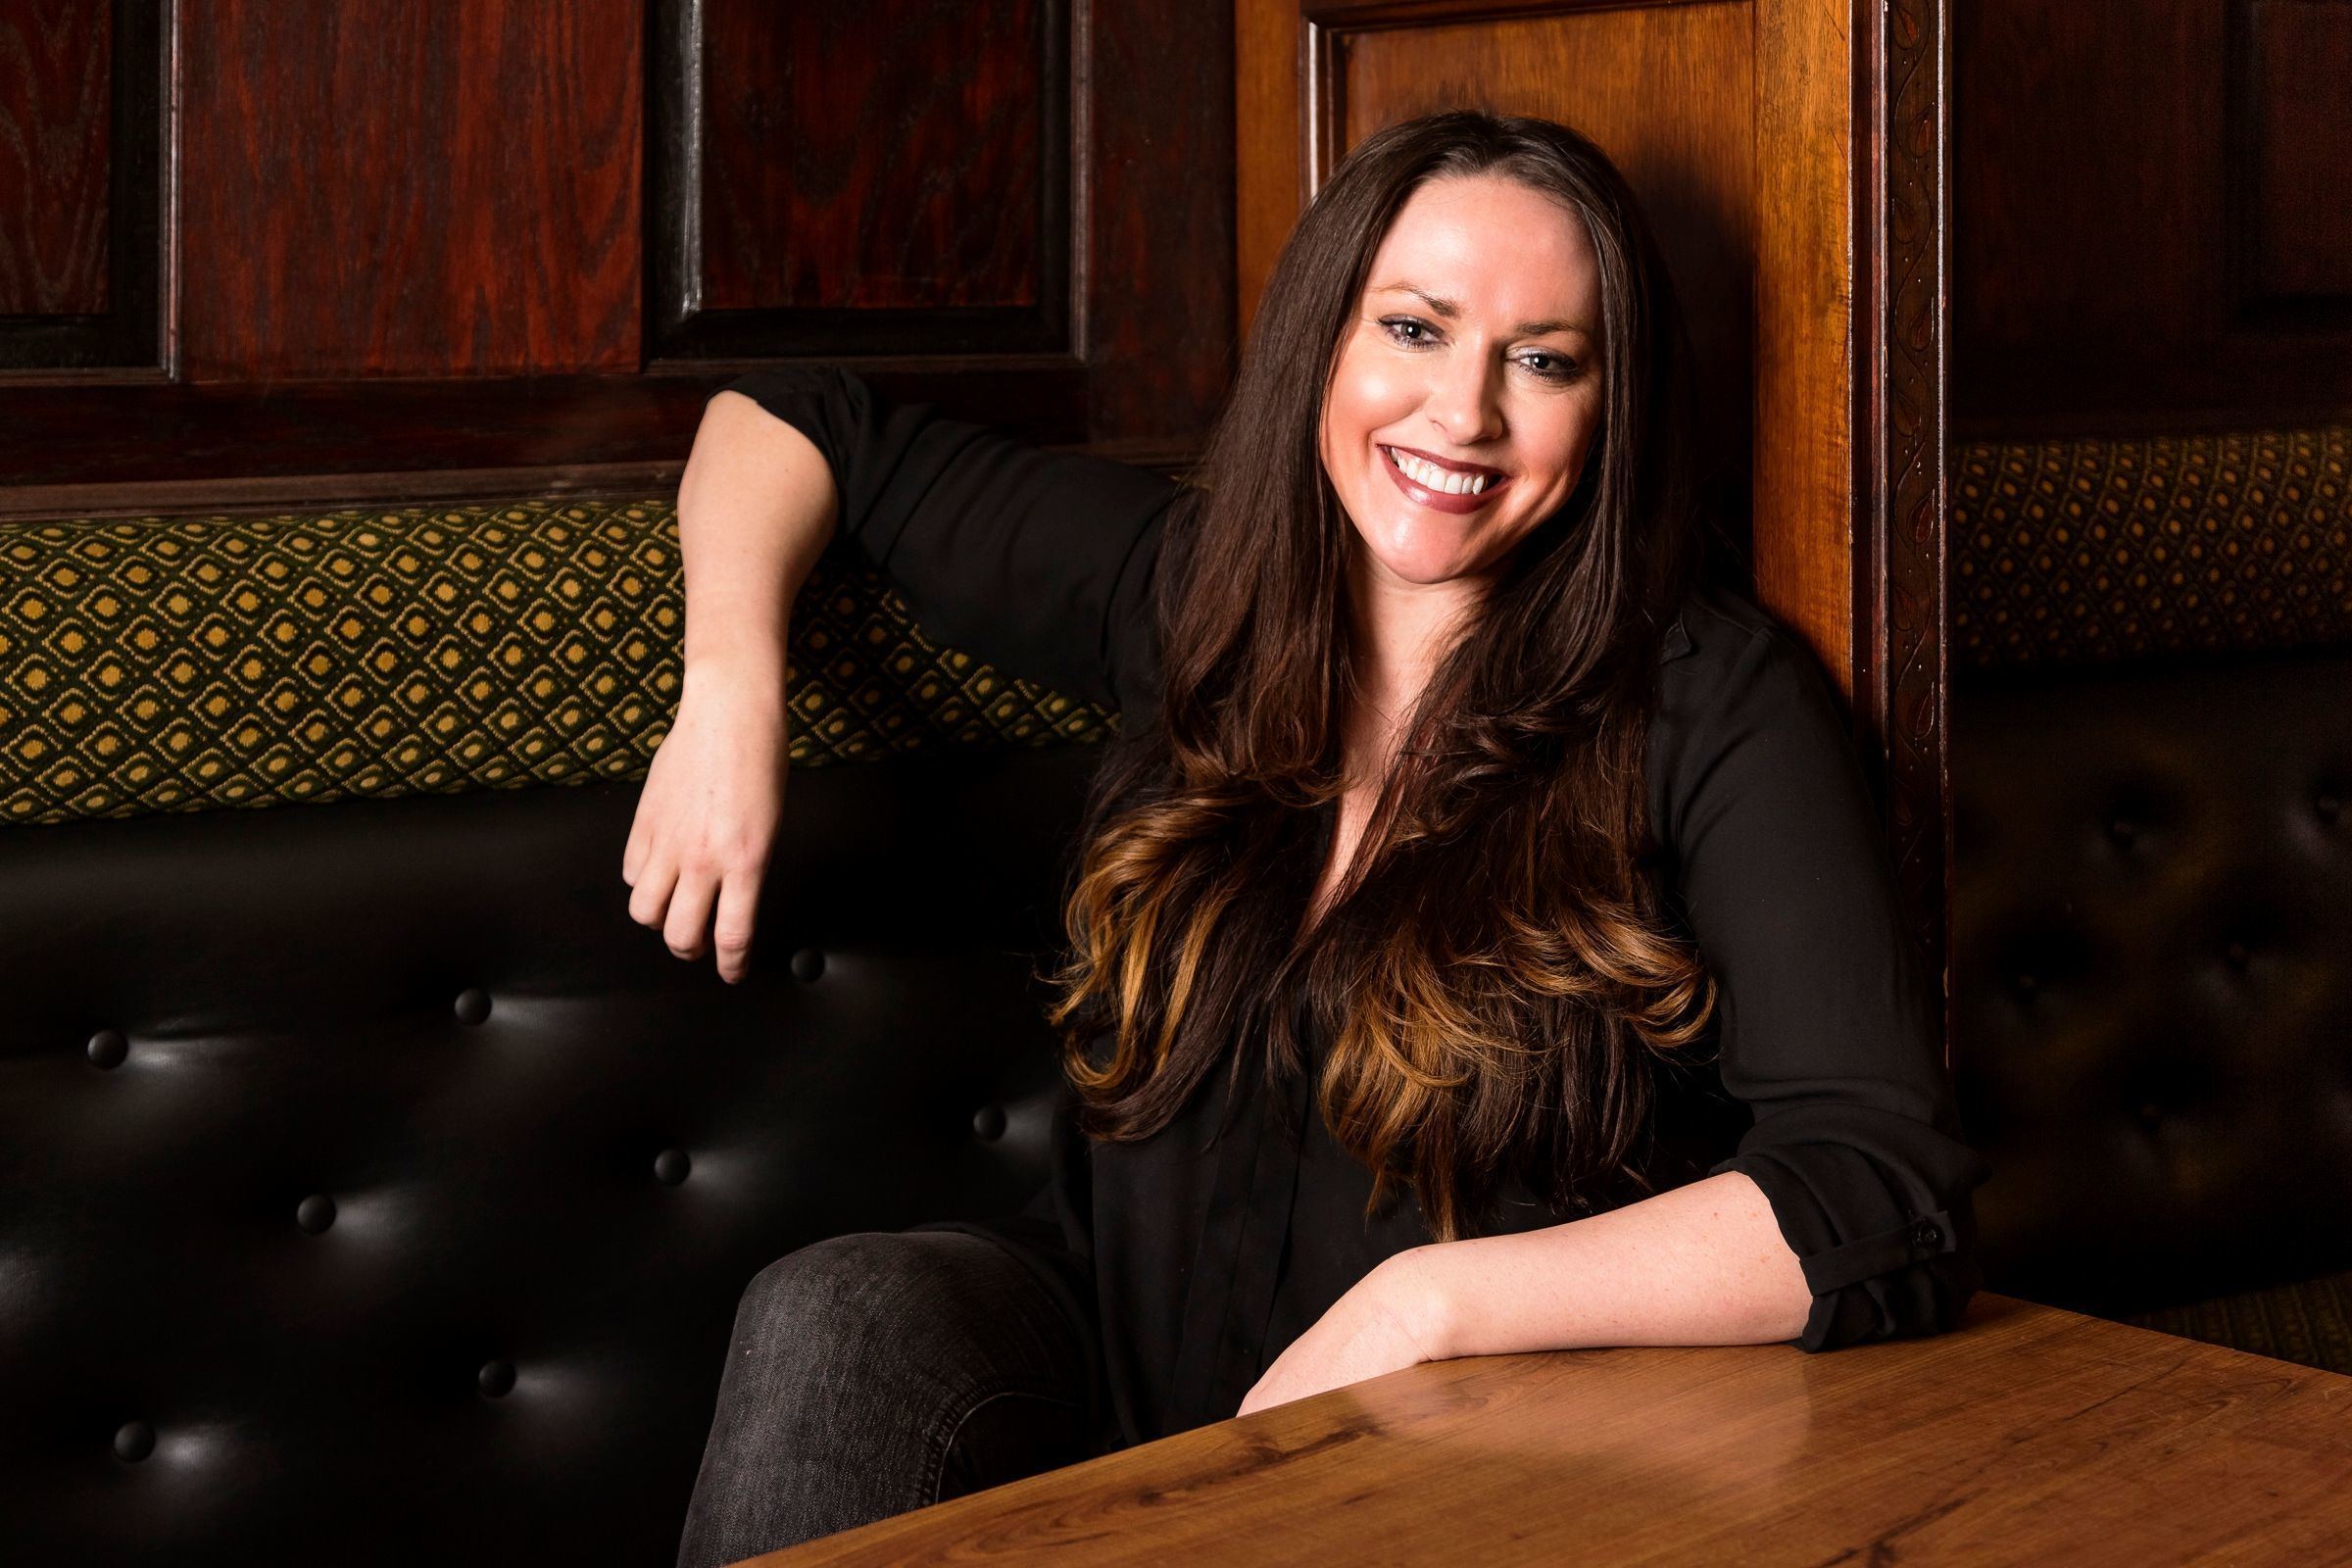 Lady of the House Chef Kate Williams is opening a casual all-day diner named Karl's in Detroit's Siren Hotel.